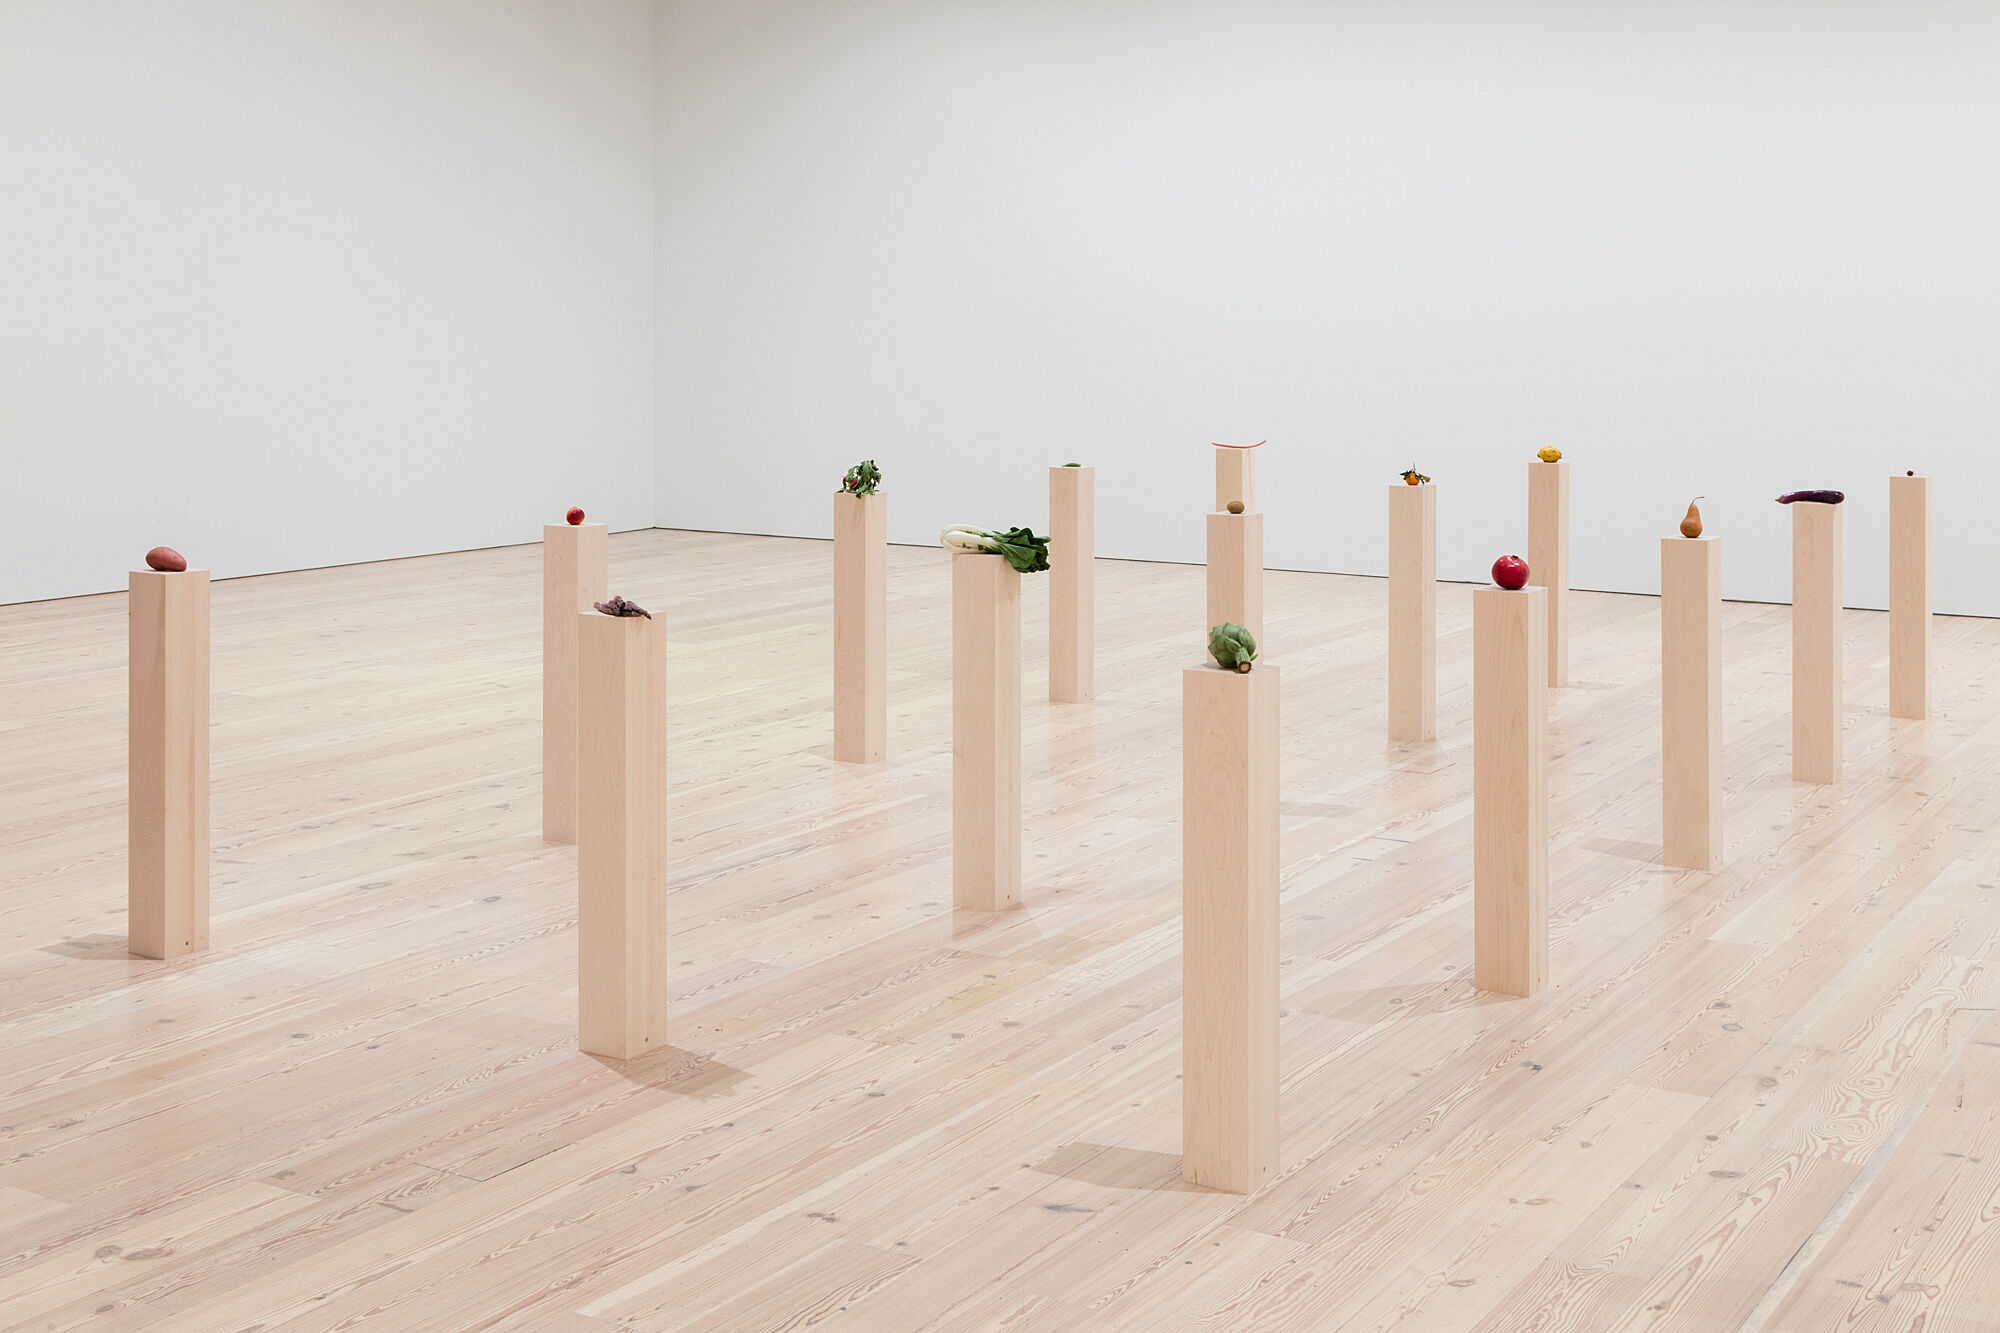 A photo of a gallery full of assorted vegetables and fruits on plinths.